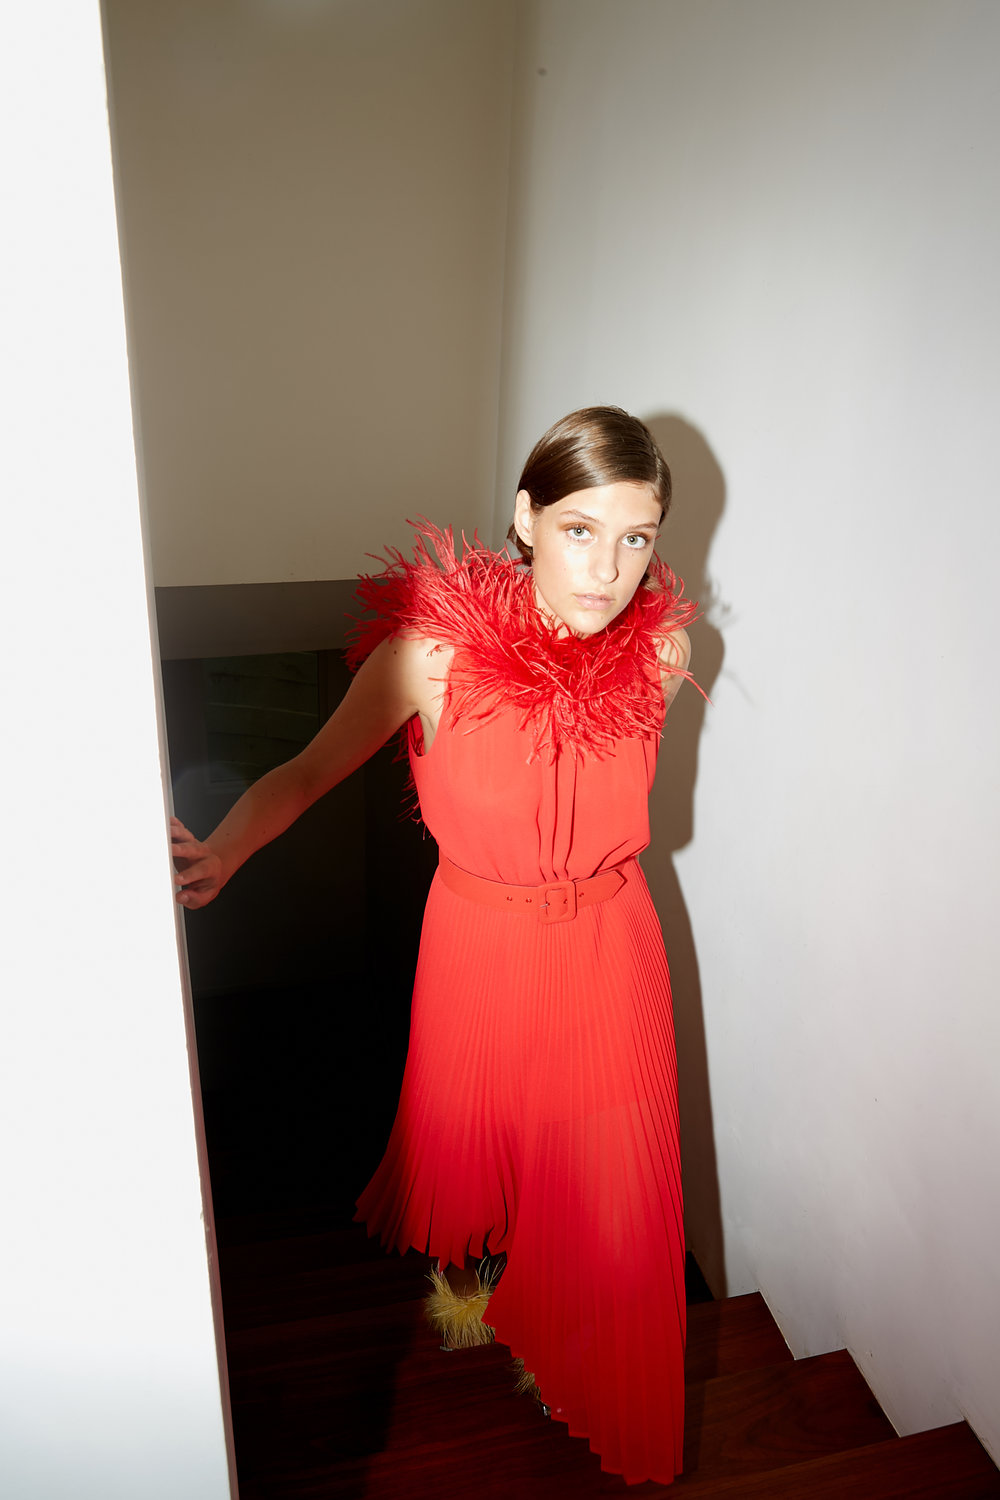 Model ascends staircase in red sleeveless dress with weather trim along neckline